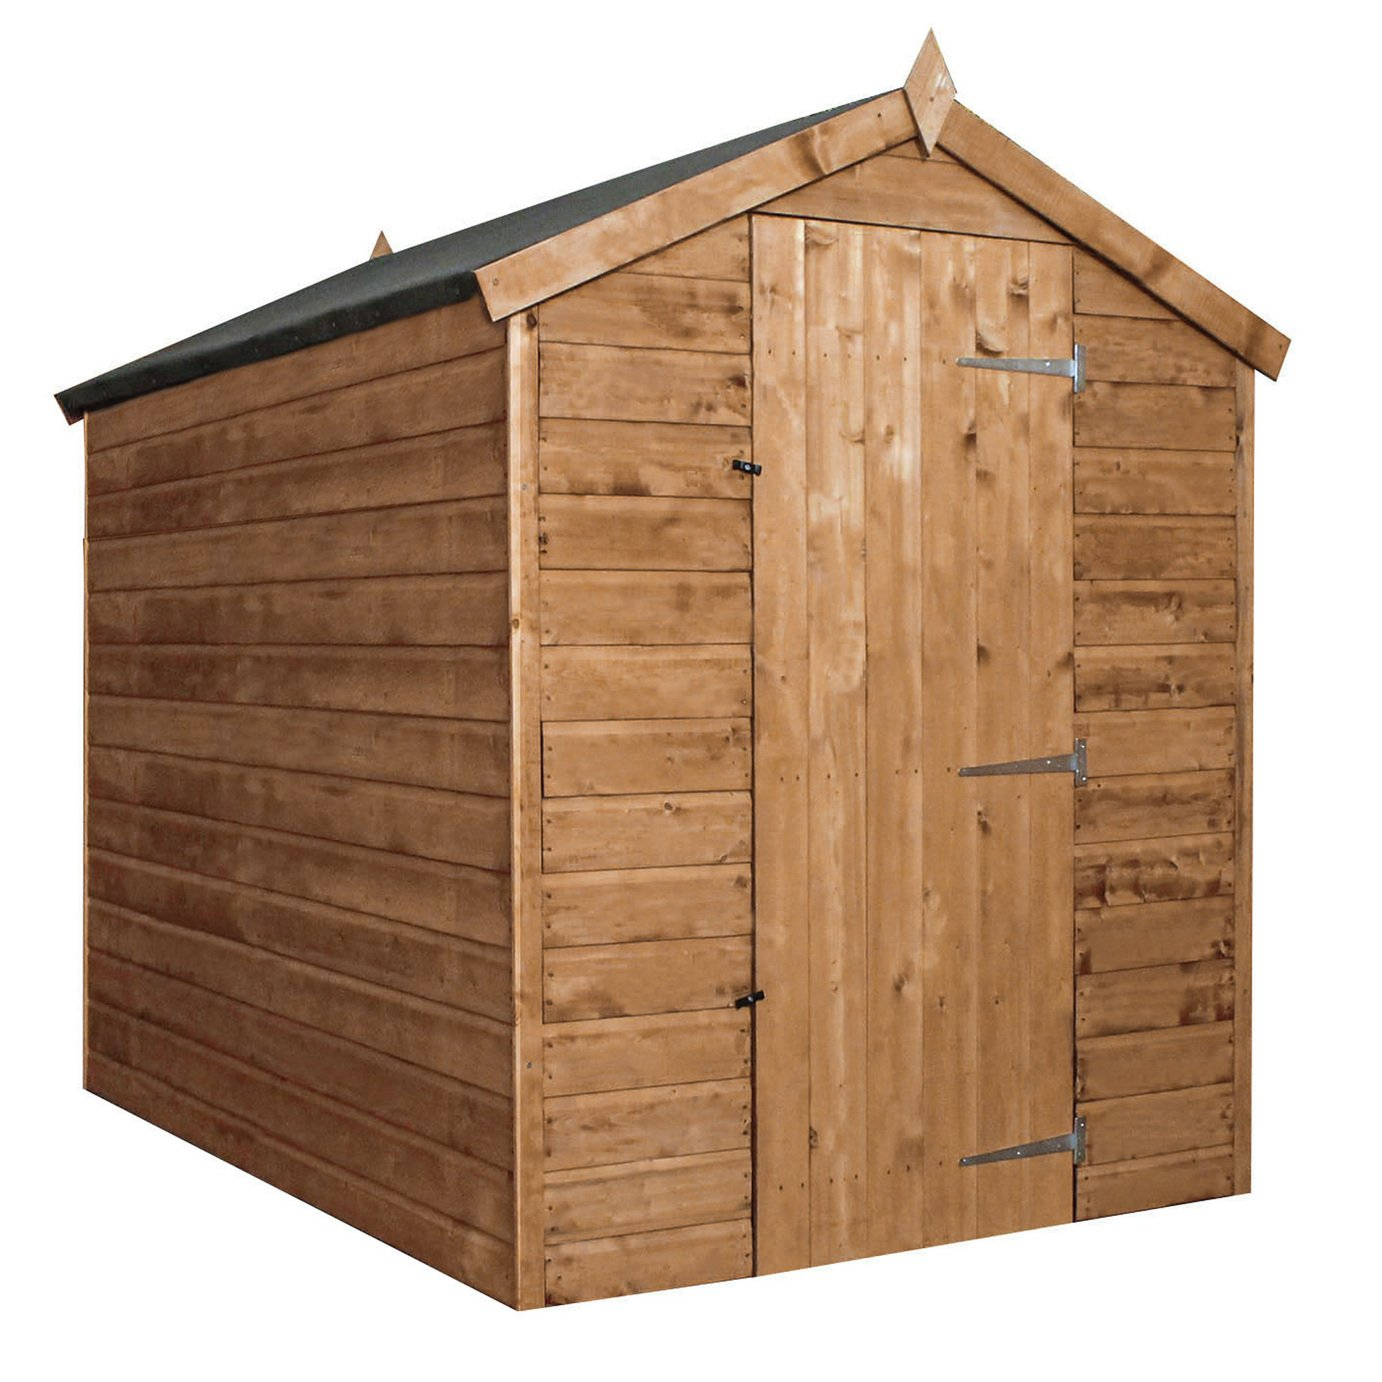 Mercia Workman Wooden 7 x 5ft Shiplap Apex Shed